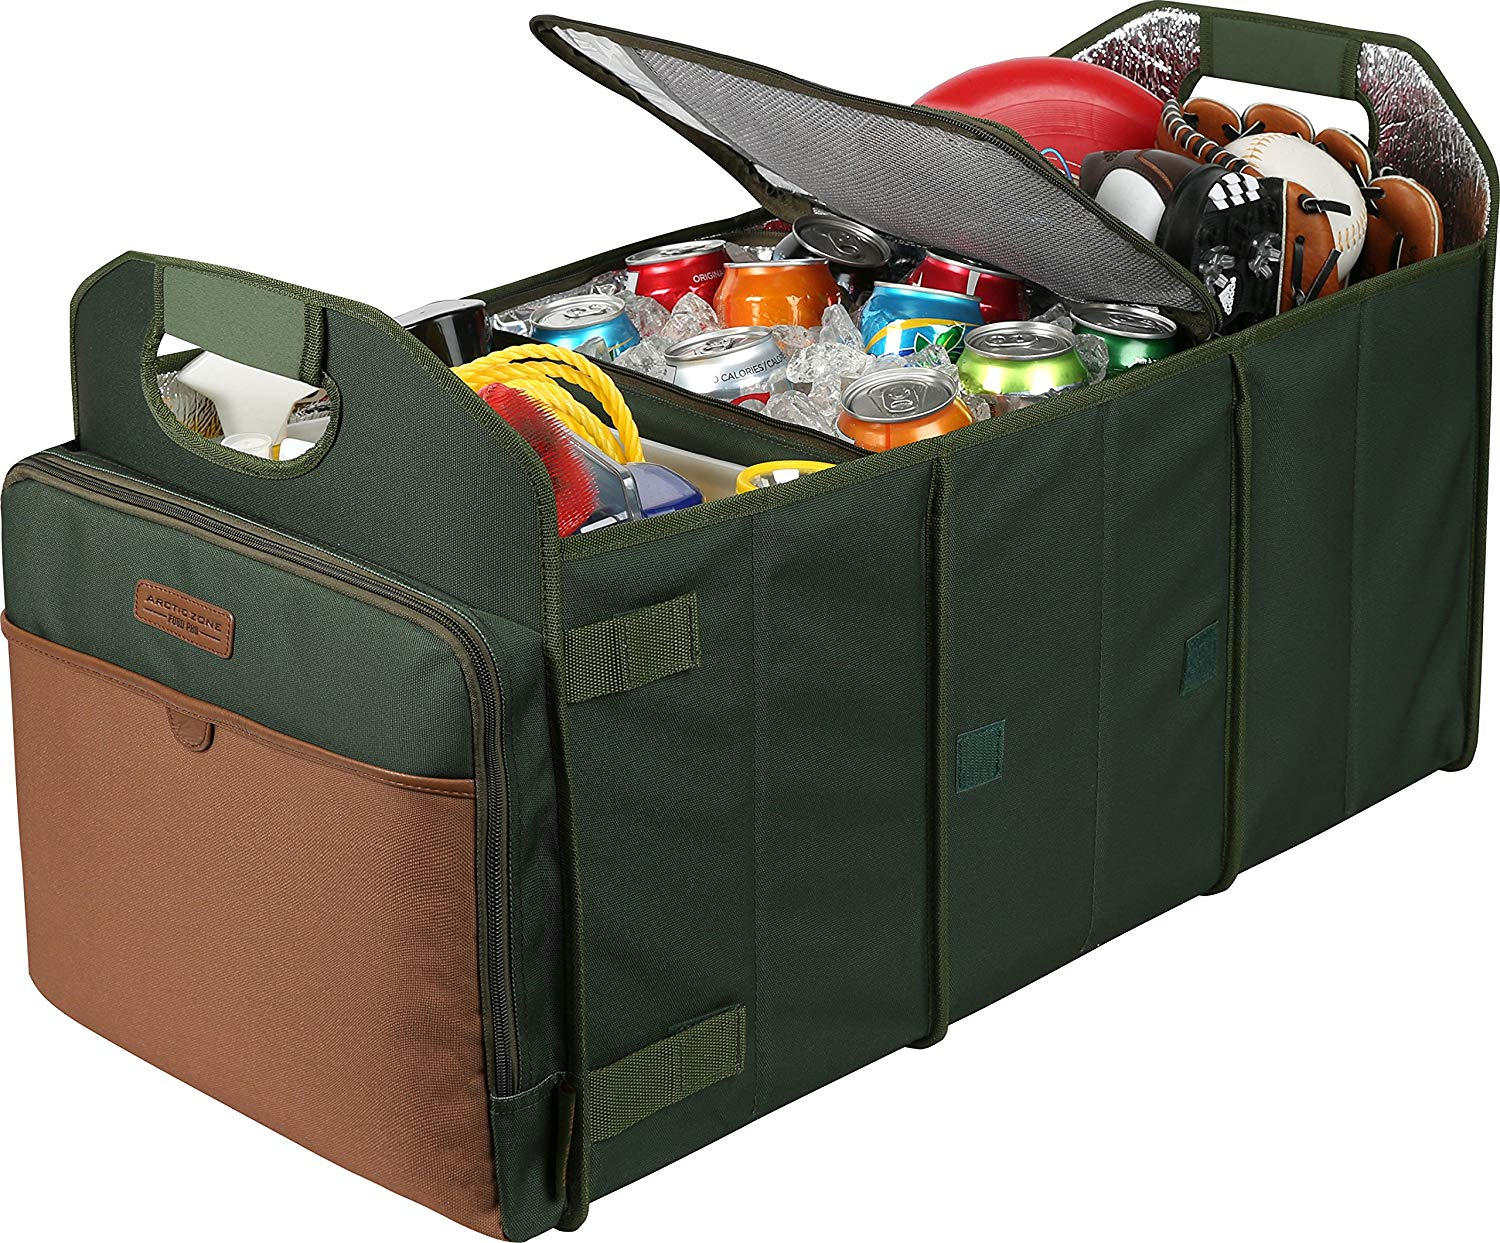 Cooler trunk organizer in green